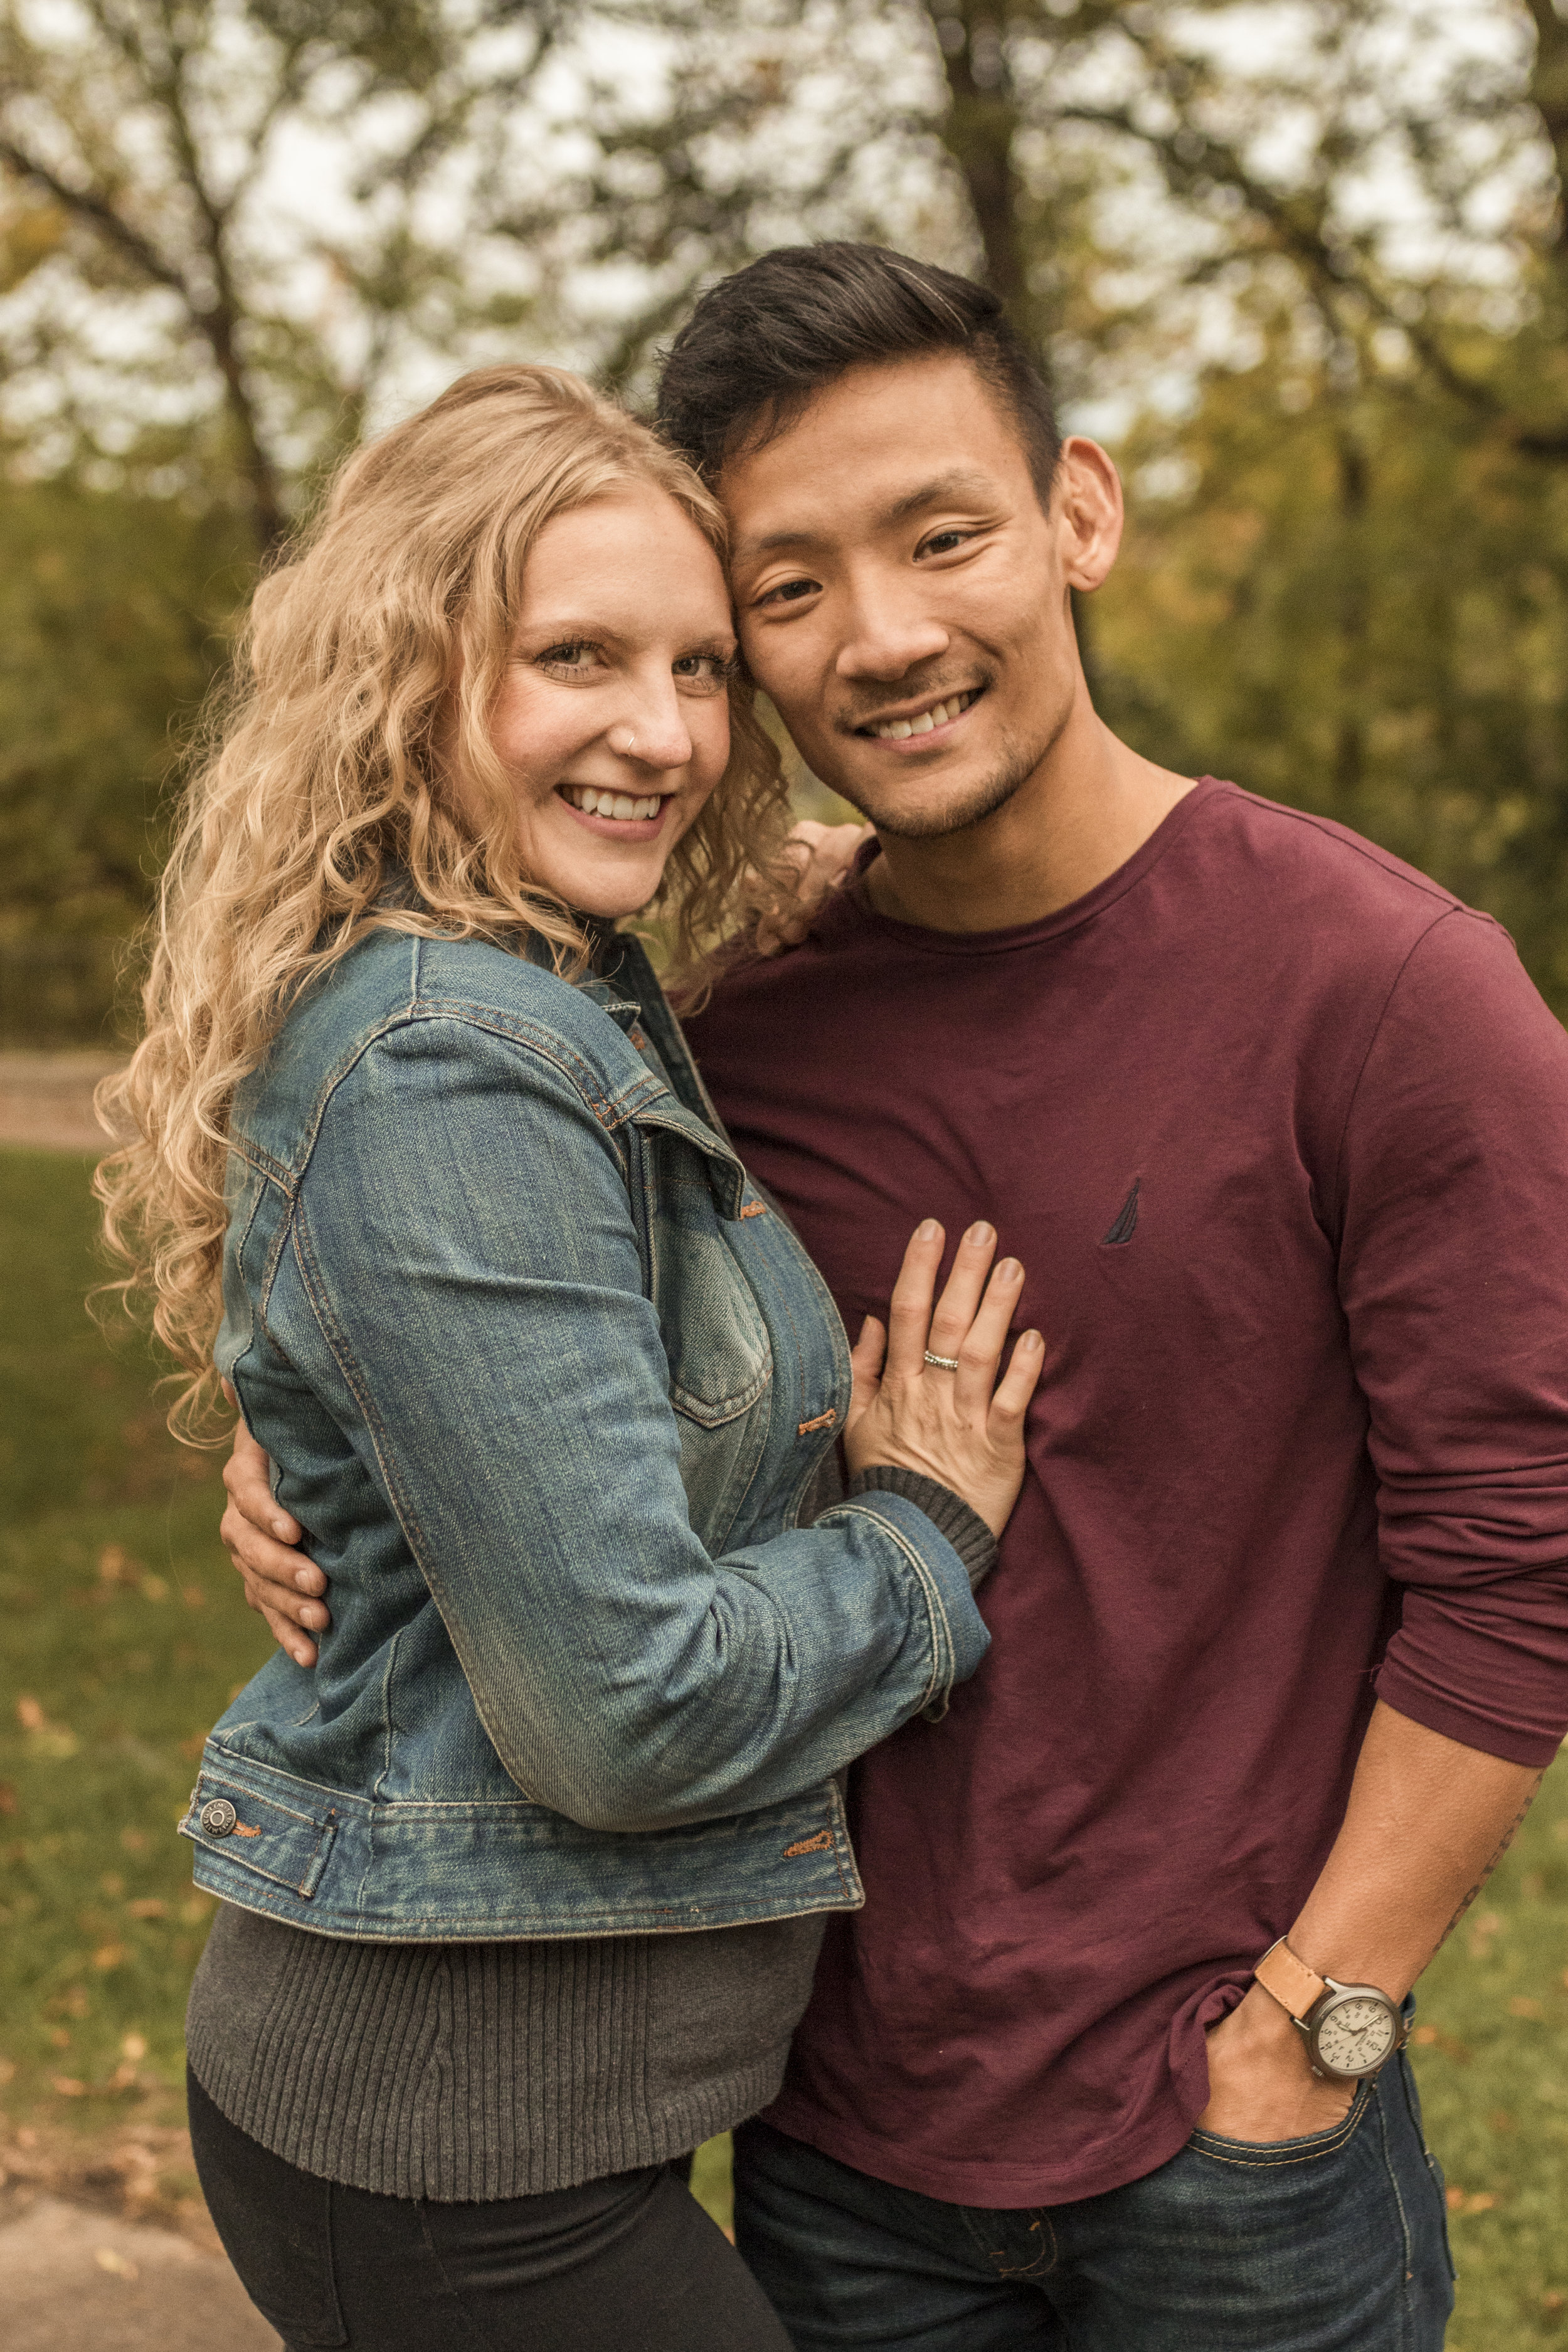 Fall Engagement Photography | St. Paul, Minnesota Wedding Photographer| Bri Bergman Photography 13.JPG